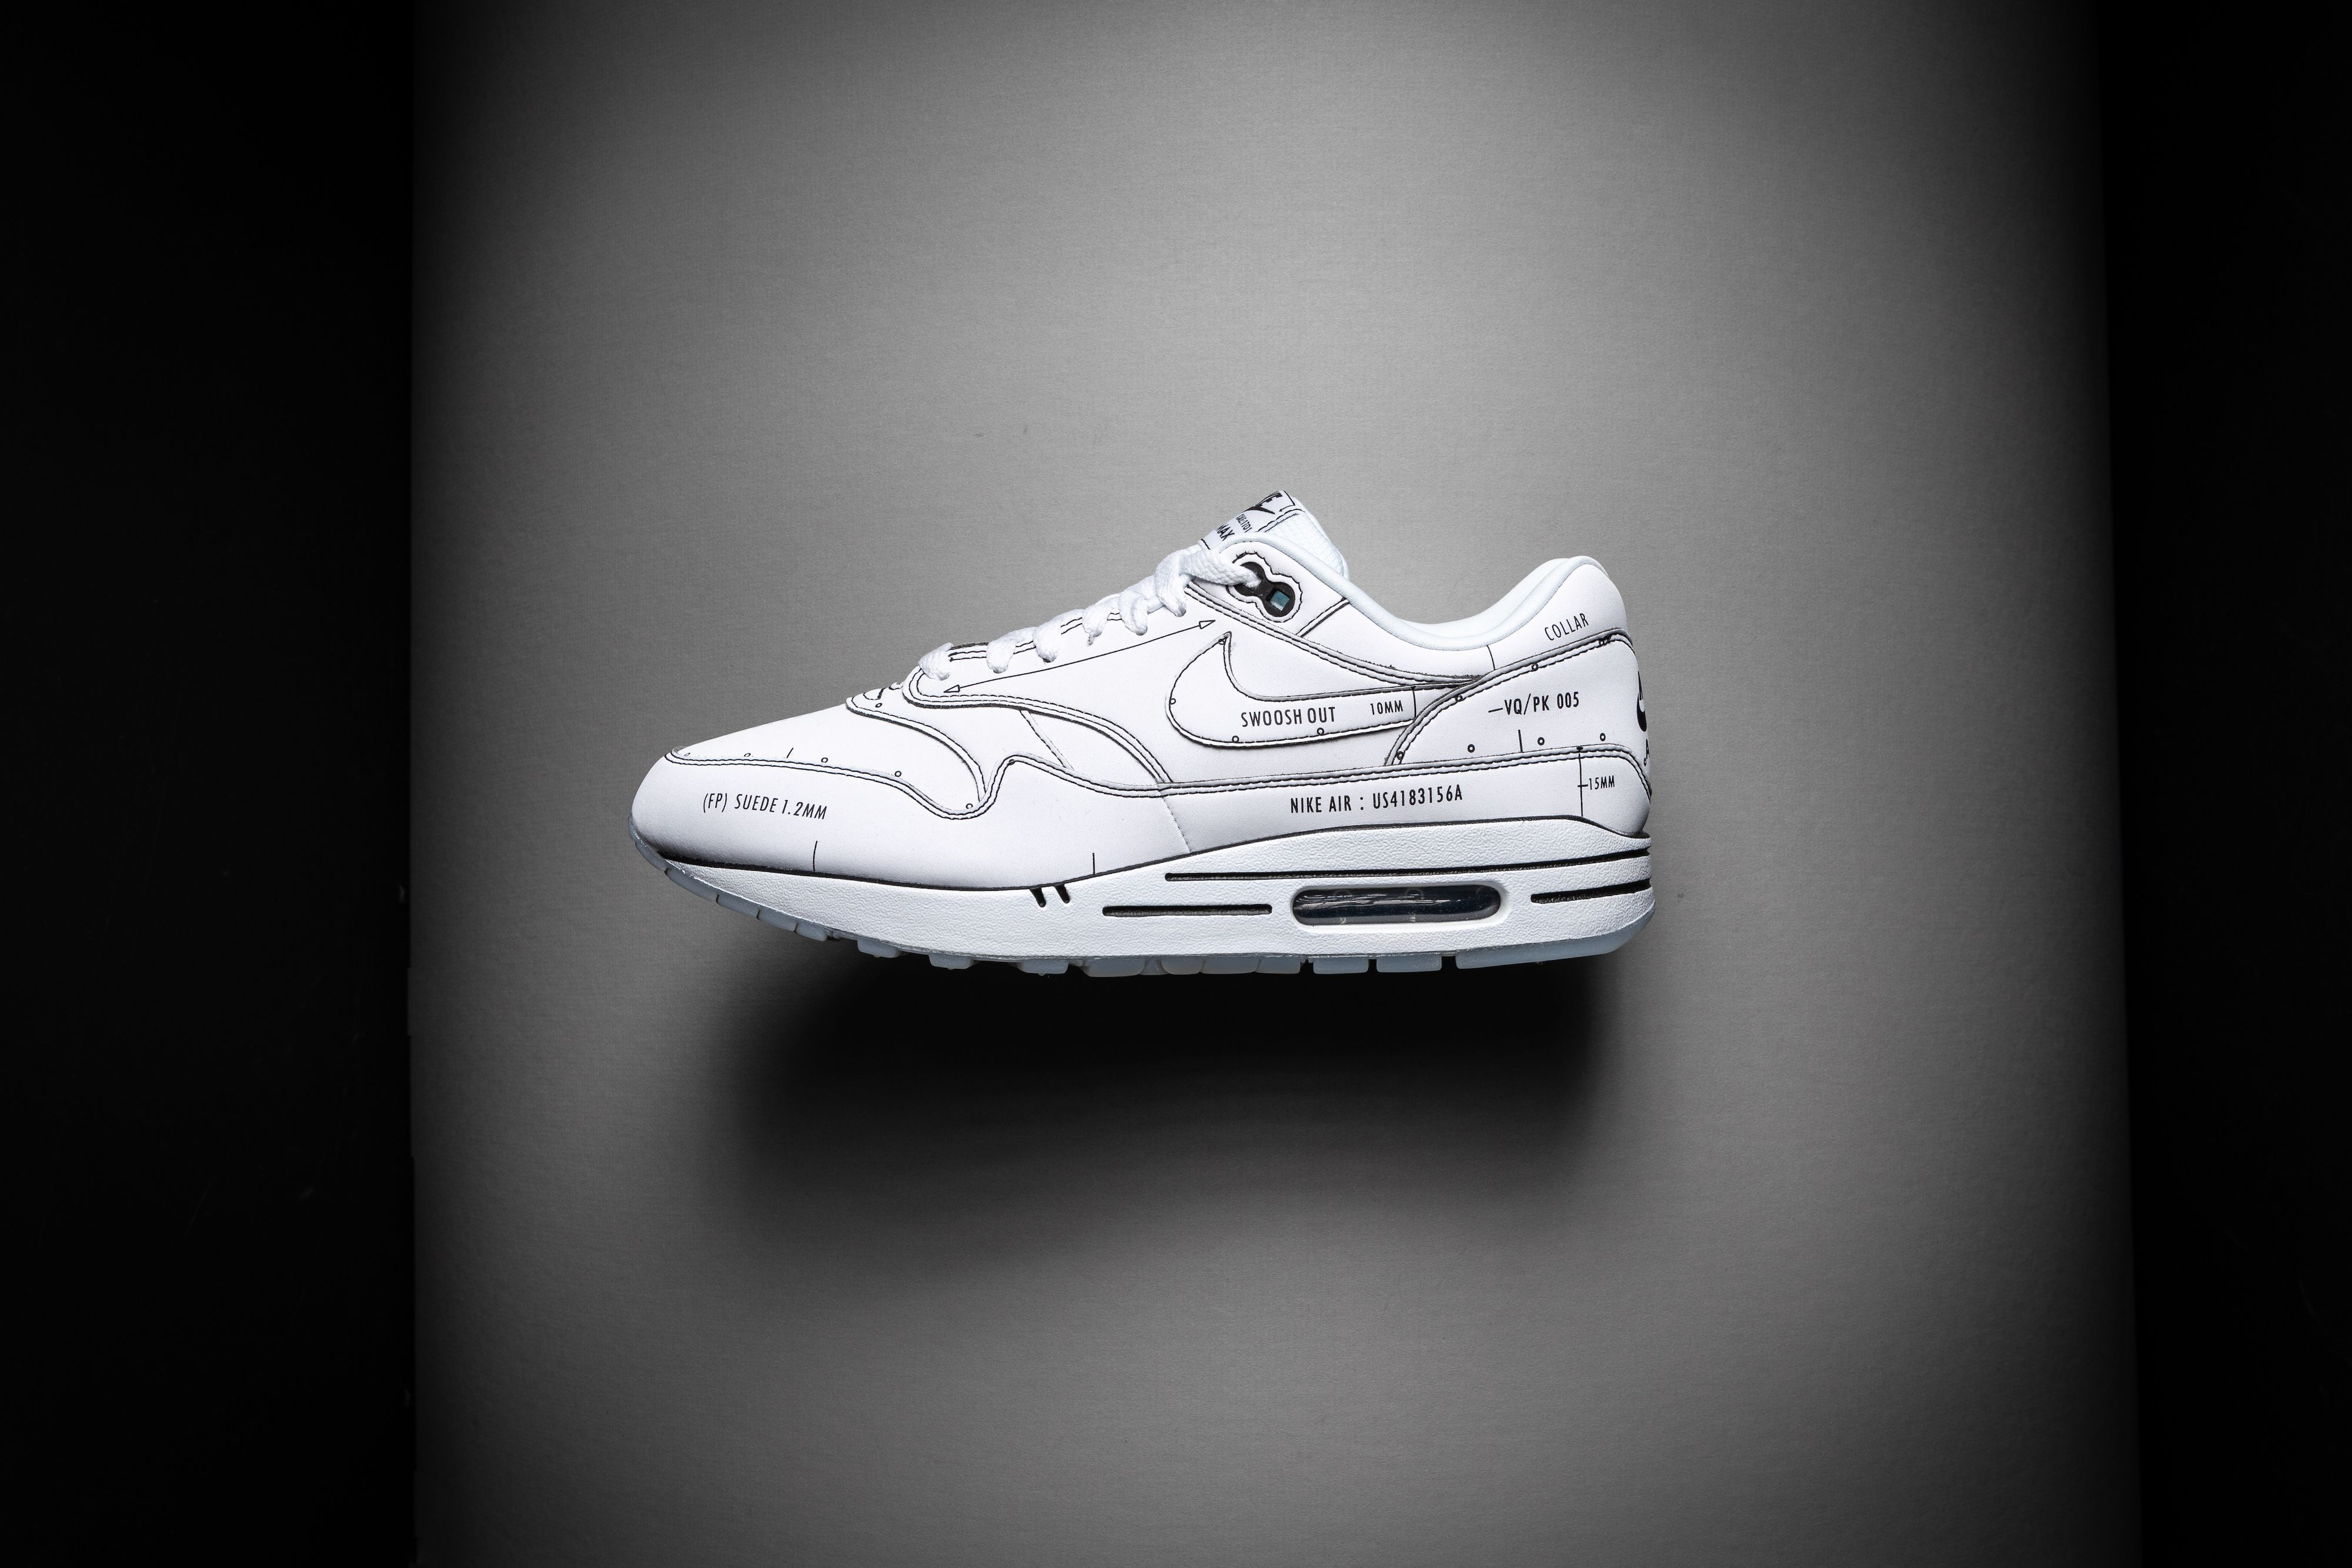 Nike 1 'Sketch Schematic' Shoes Size 4 | Nike Air Max in